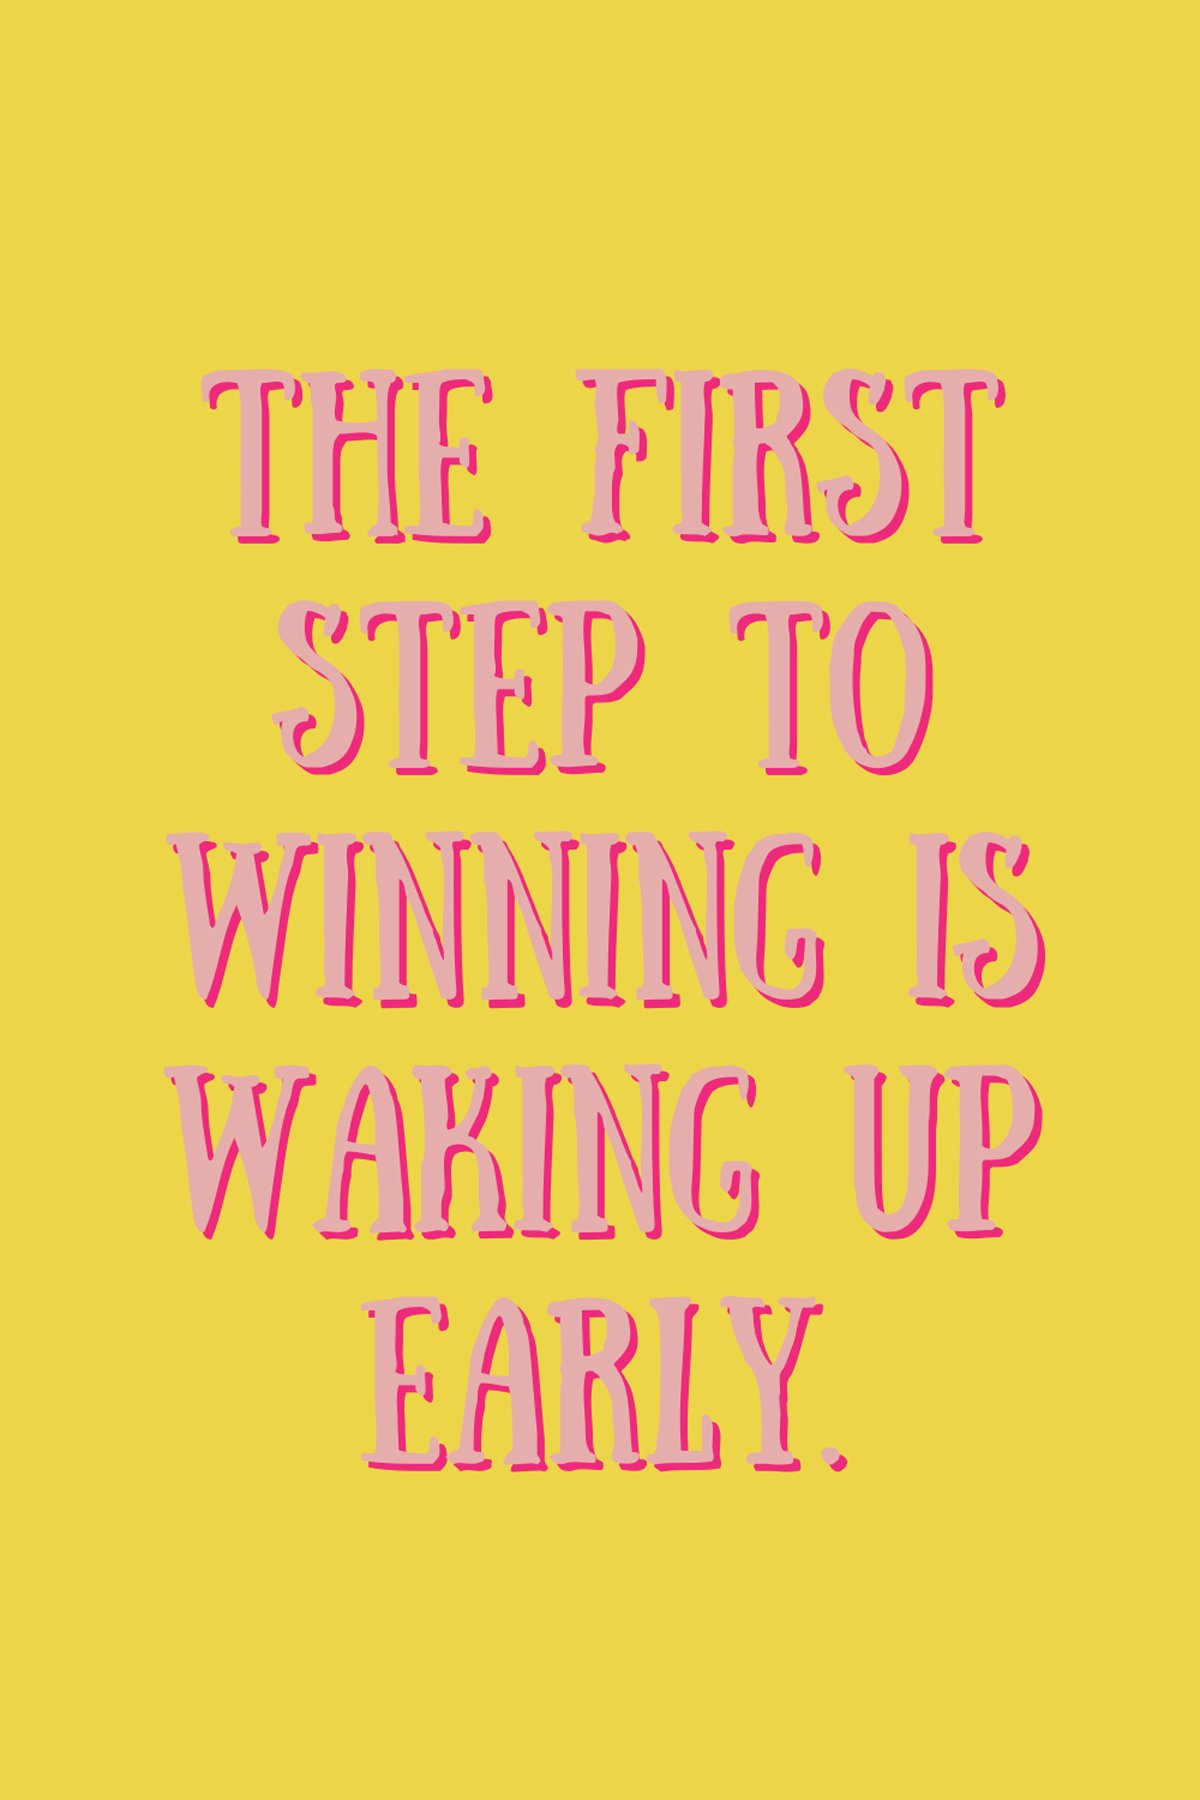 Waking Up Early Quotes For Winning